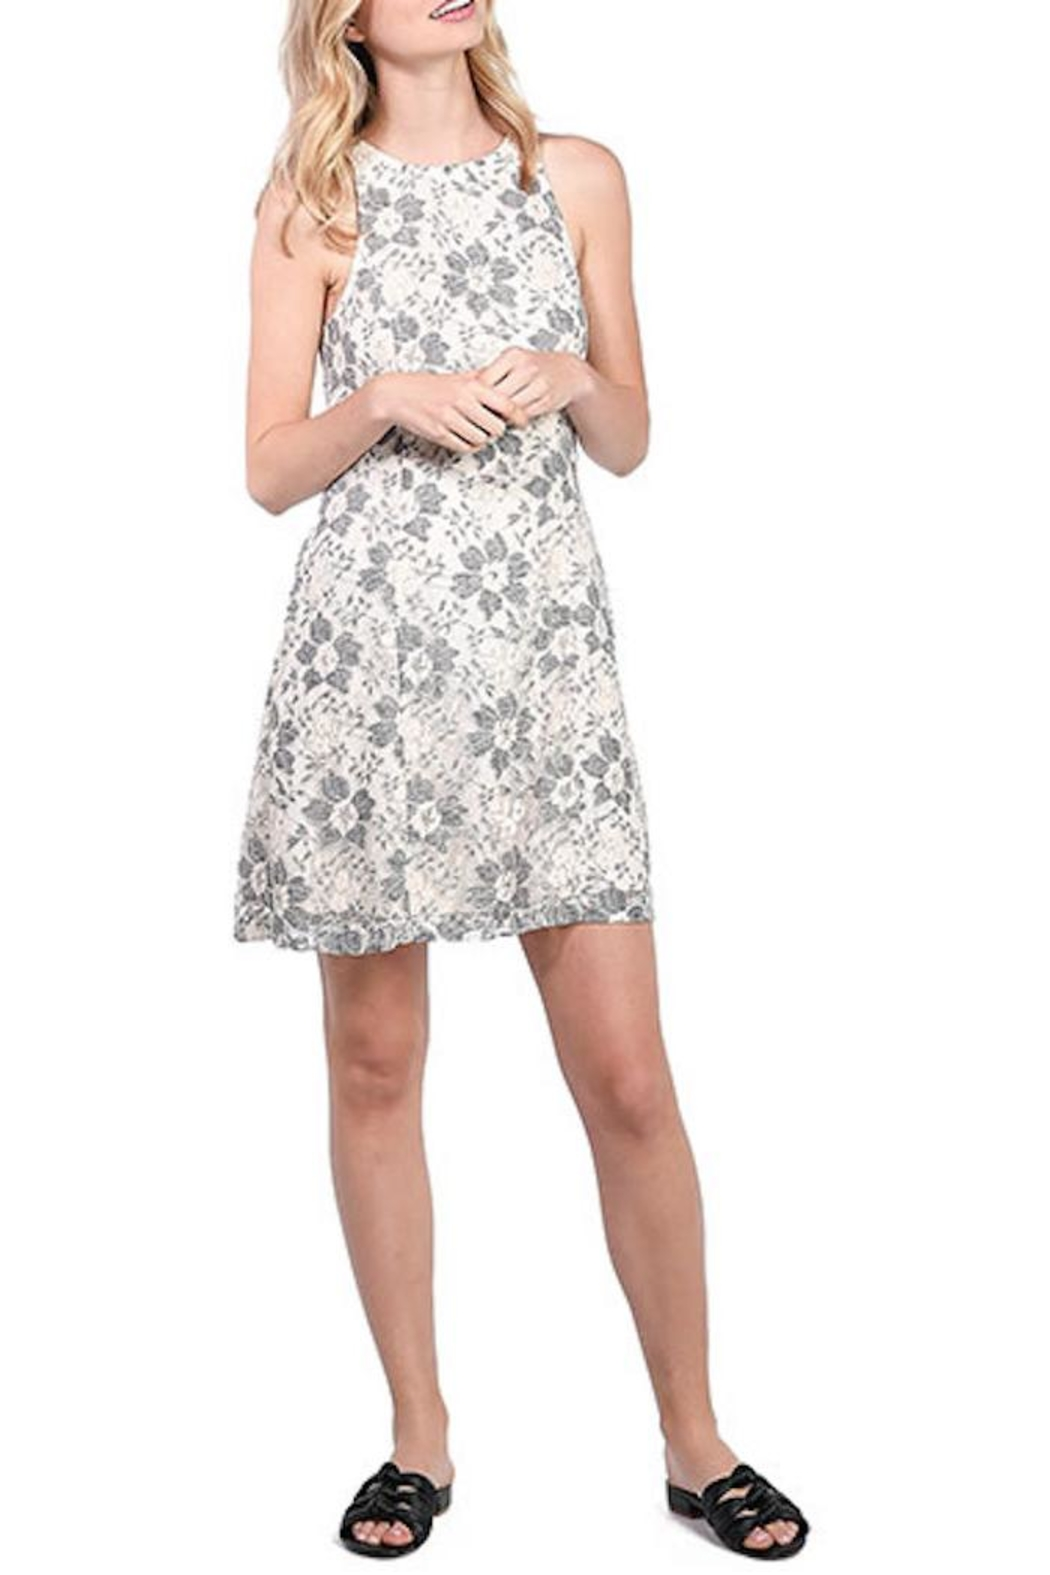 Kensie Blossom Lace Dress - Main Image